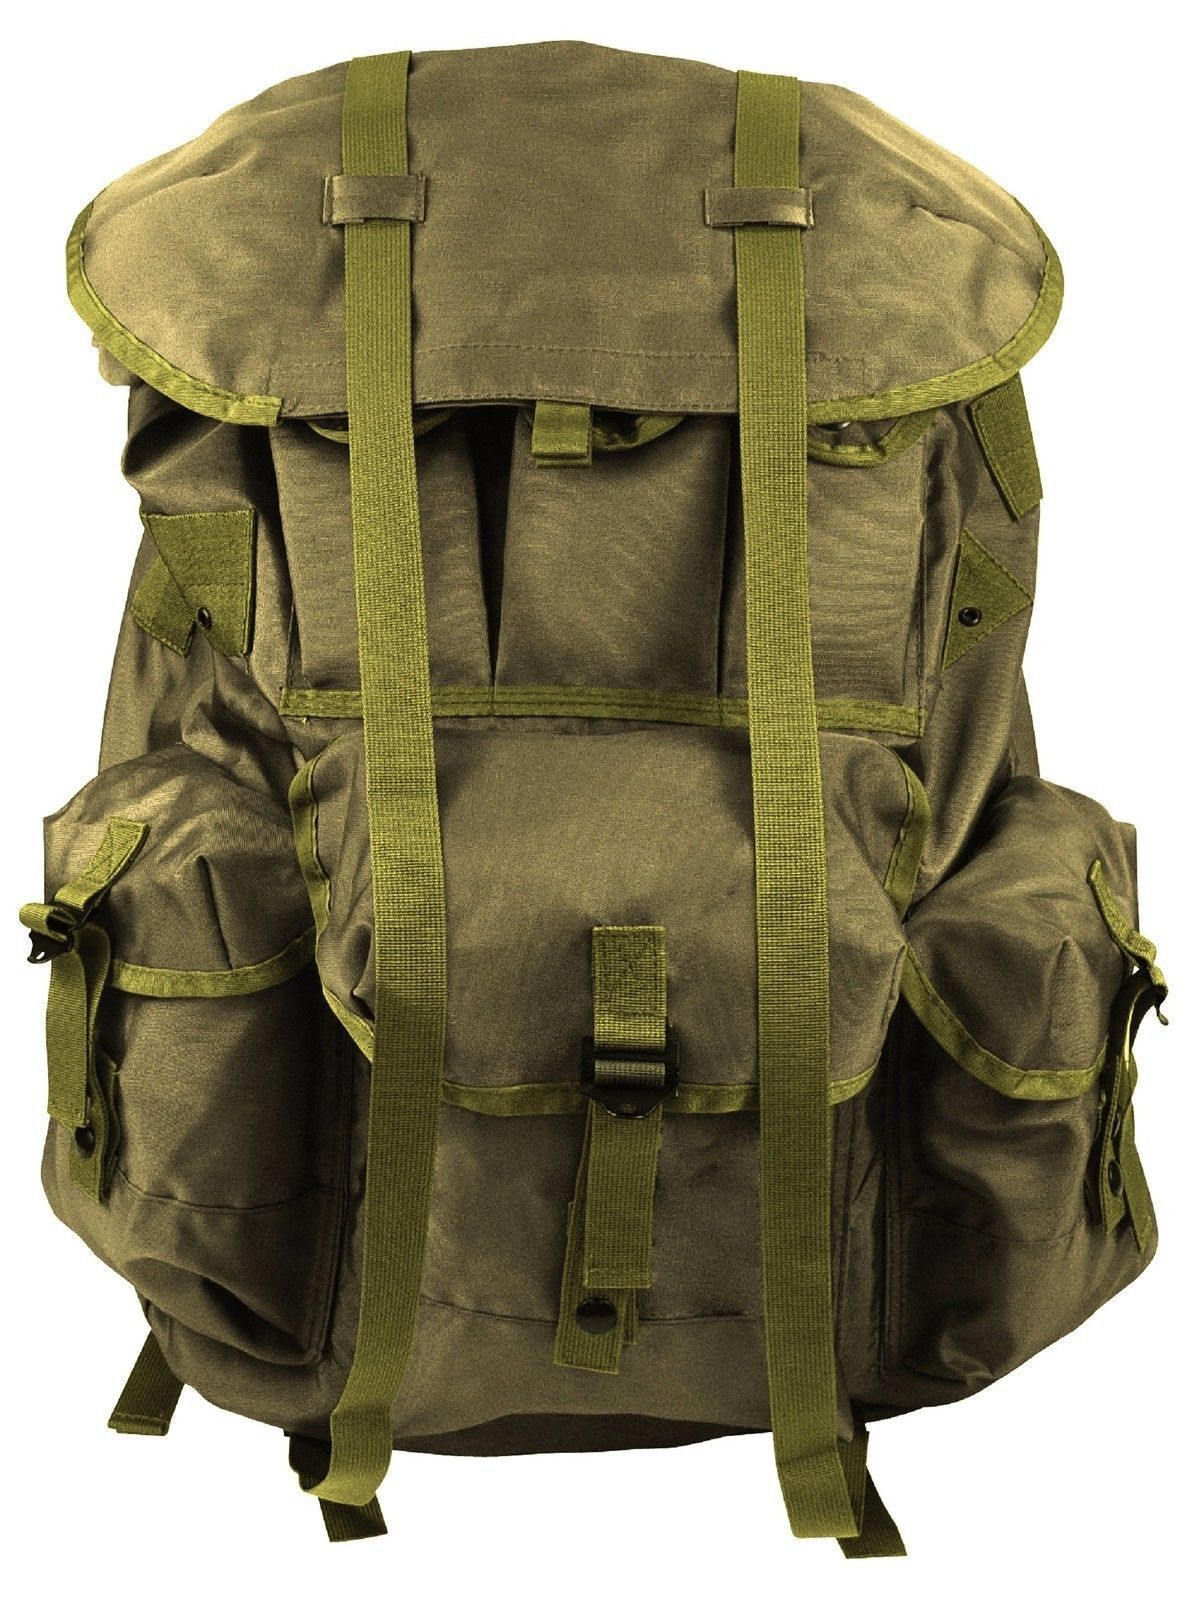 Hunting Hip Bag Military carrying pack ~ Survival Gear ~ SAVE OVER 60/% OFF